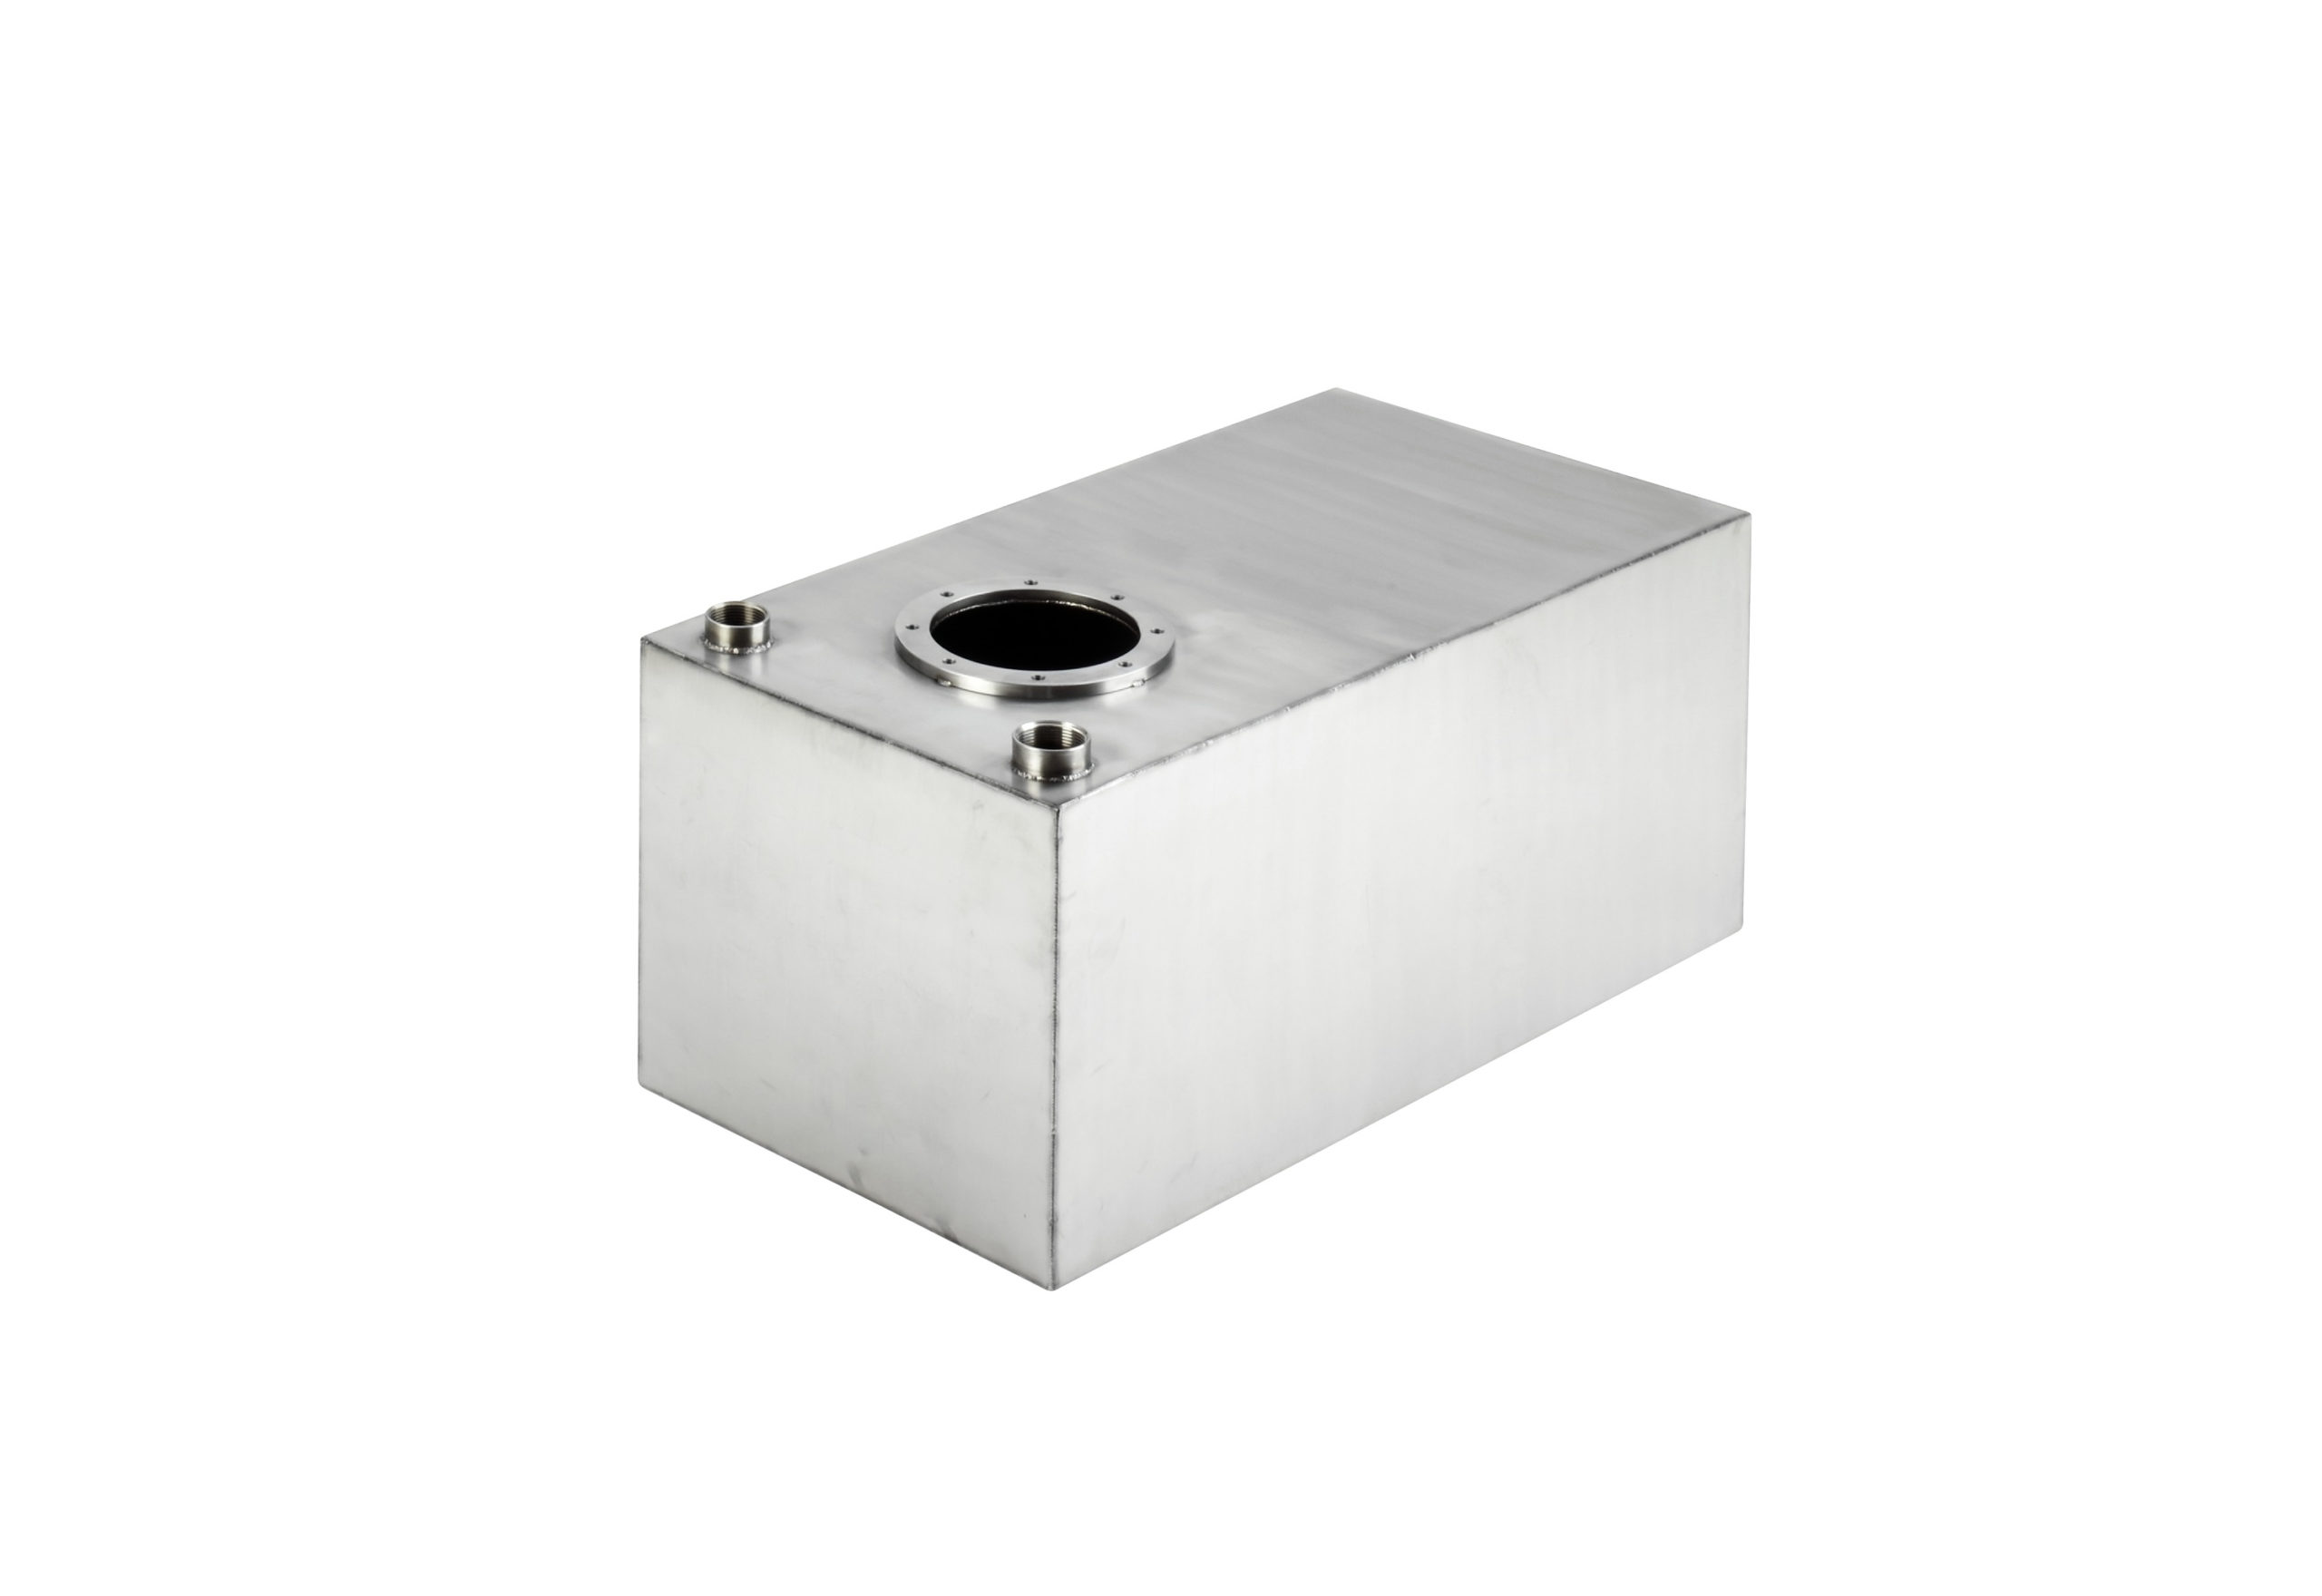 100 Litre Fuel Tank - Stainless Steel or Aluminium